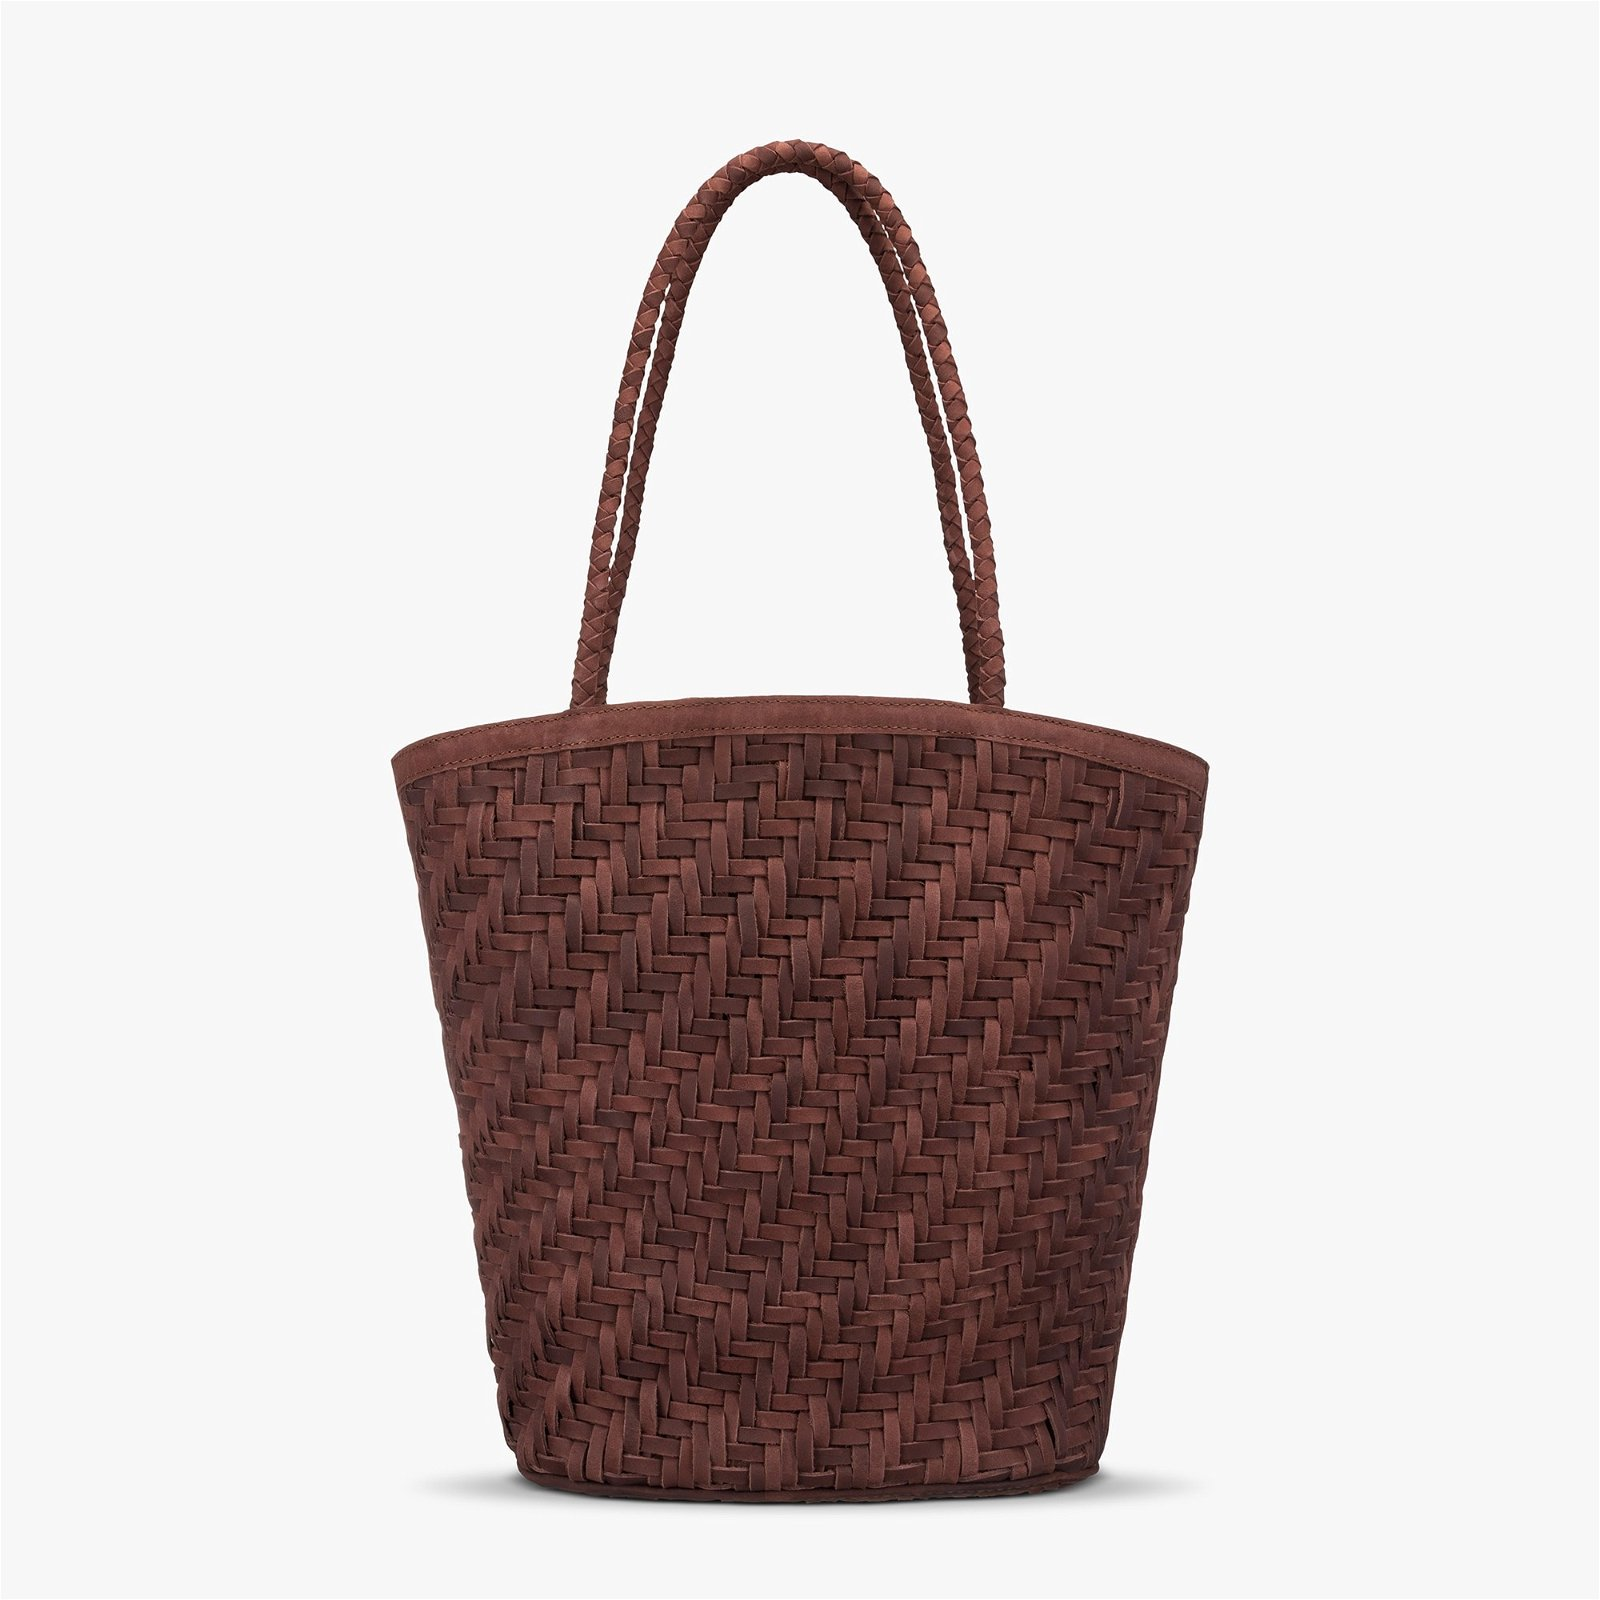 Bembien® Jeanne leather woven market tote bag